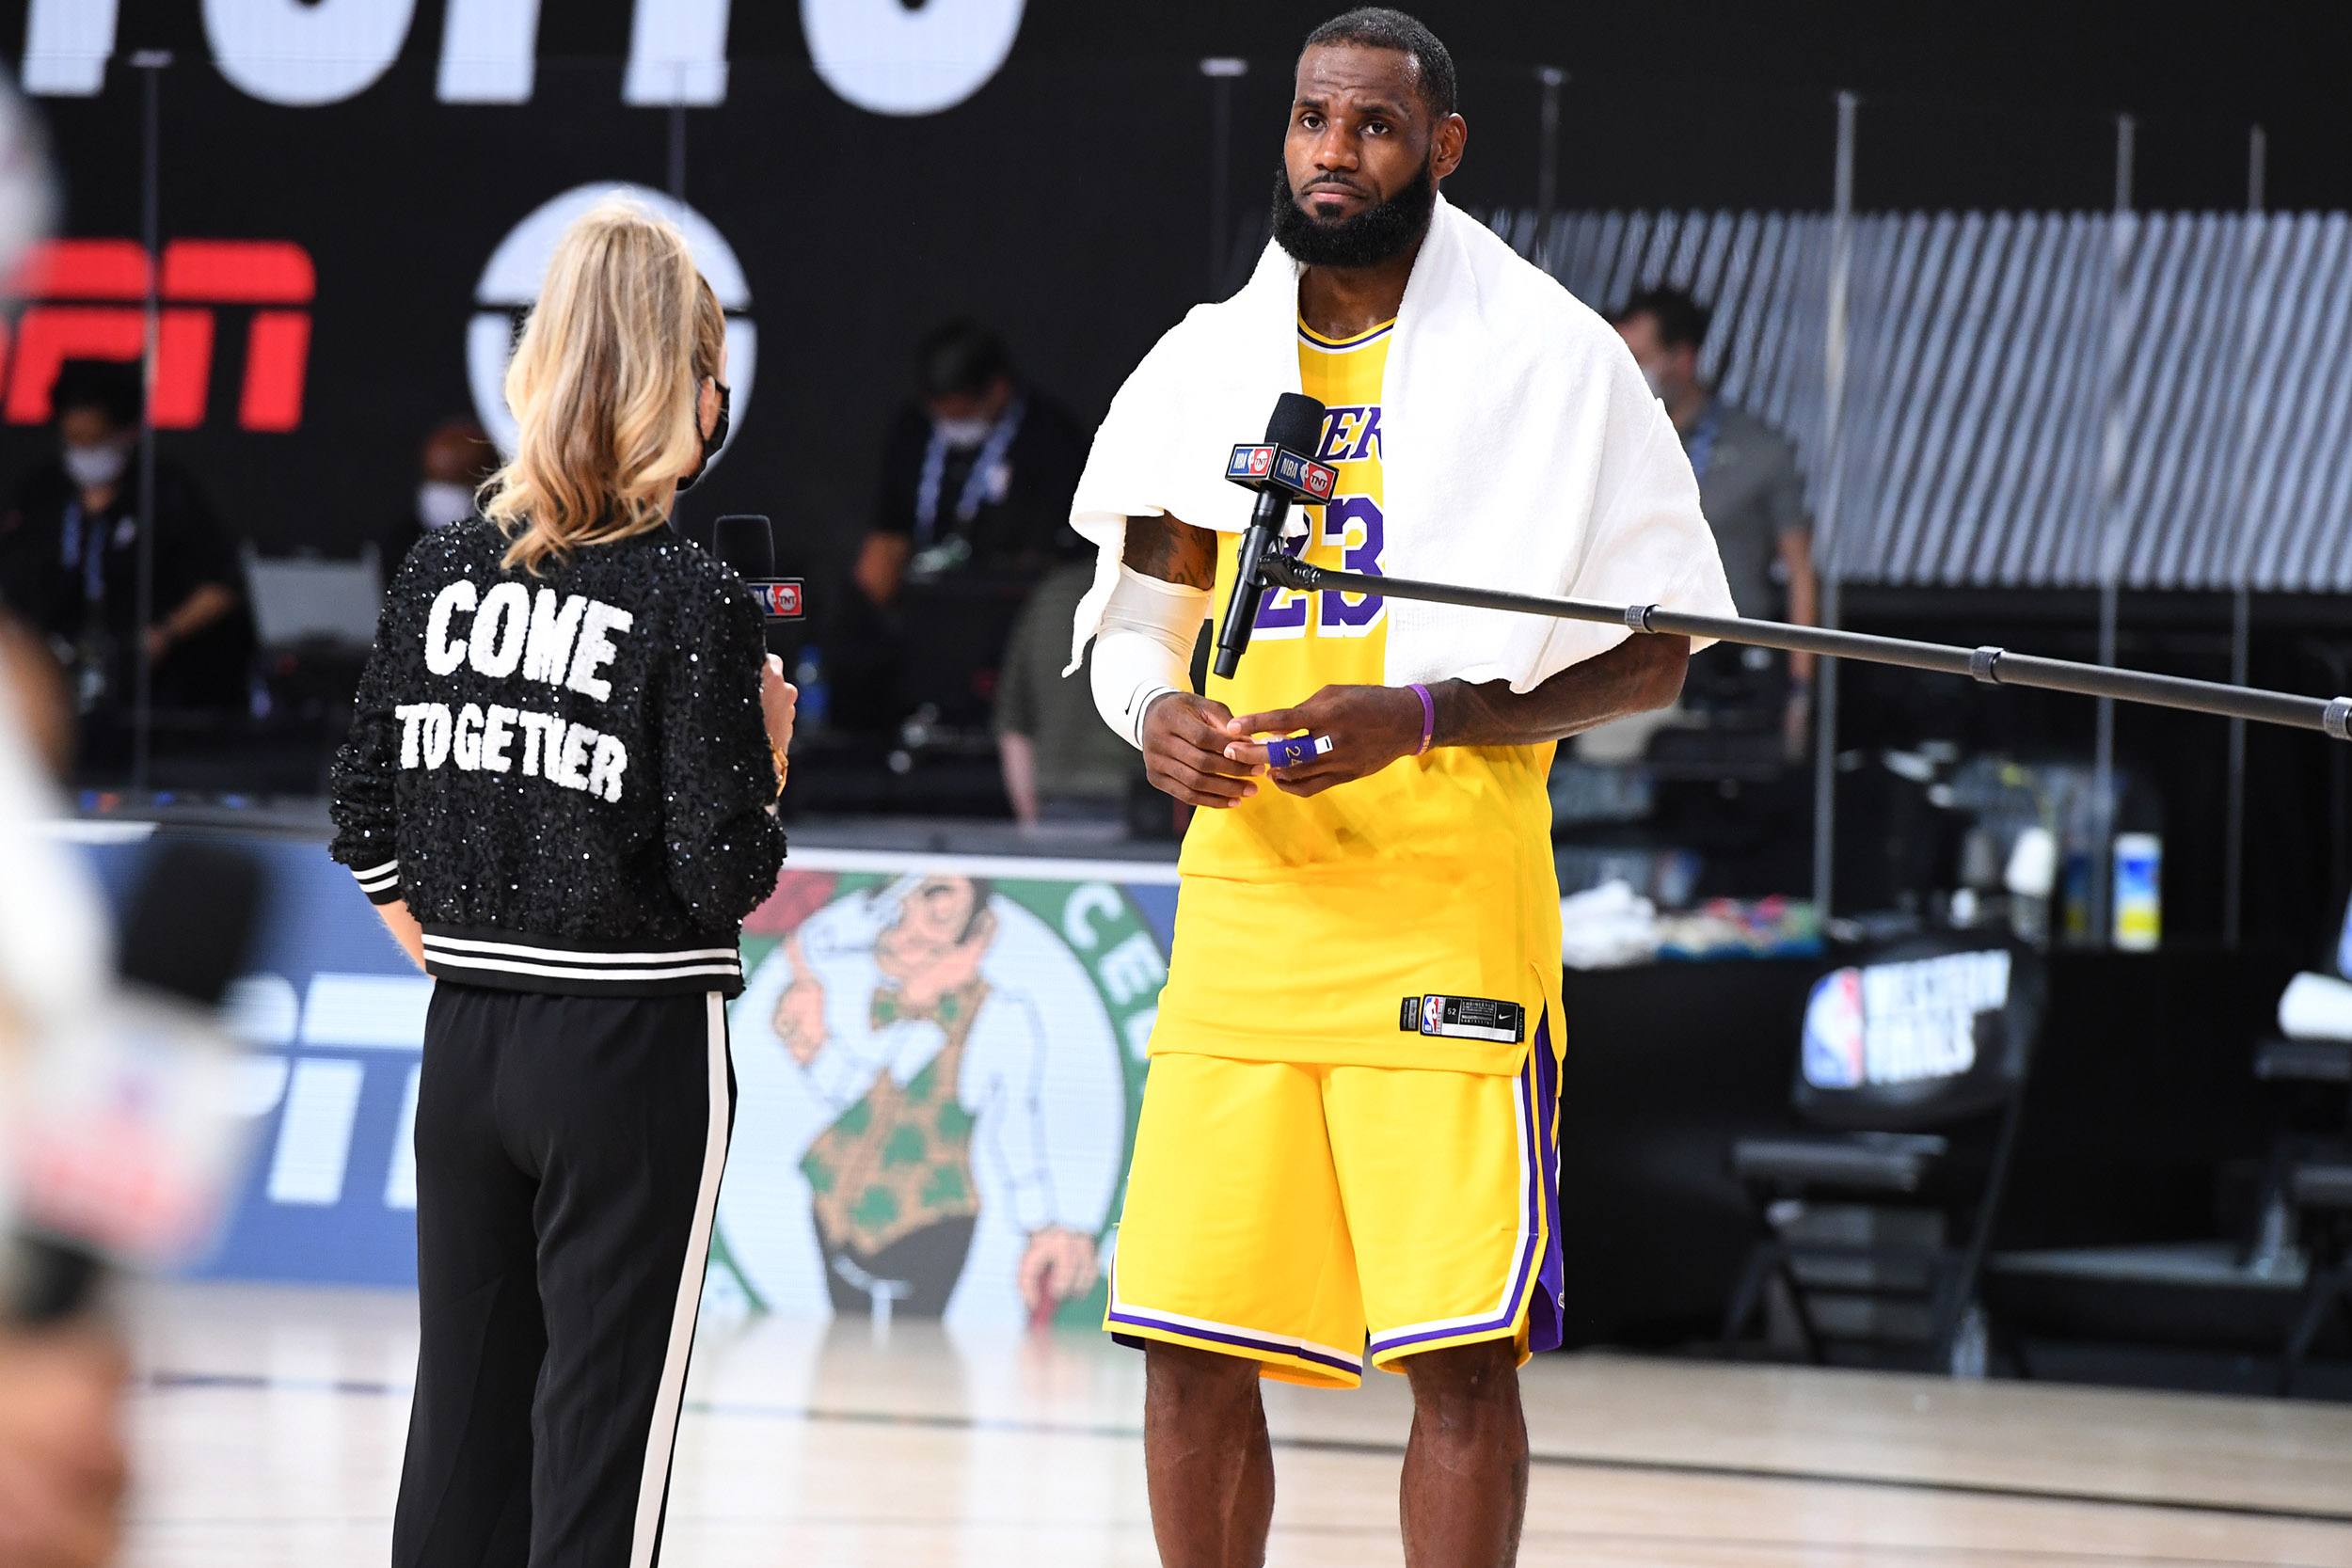 Turner Sports Reporter Allie LaForce interviews LeBron James #23 of the Los Angeles Lakers after a game against the Denver Nuggets during Game 4 of the Western Conference Finals on September 24, in Orlando, Florida at the AdventHealth Arena.